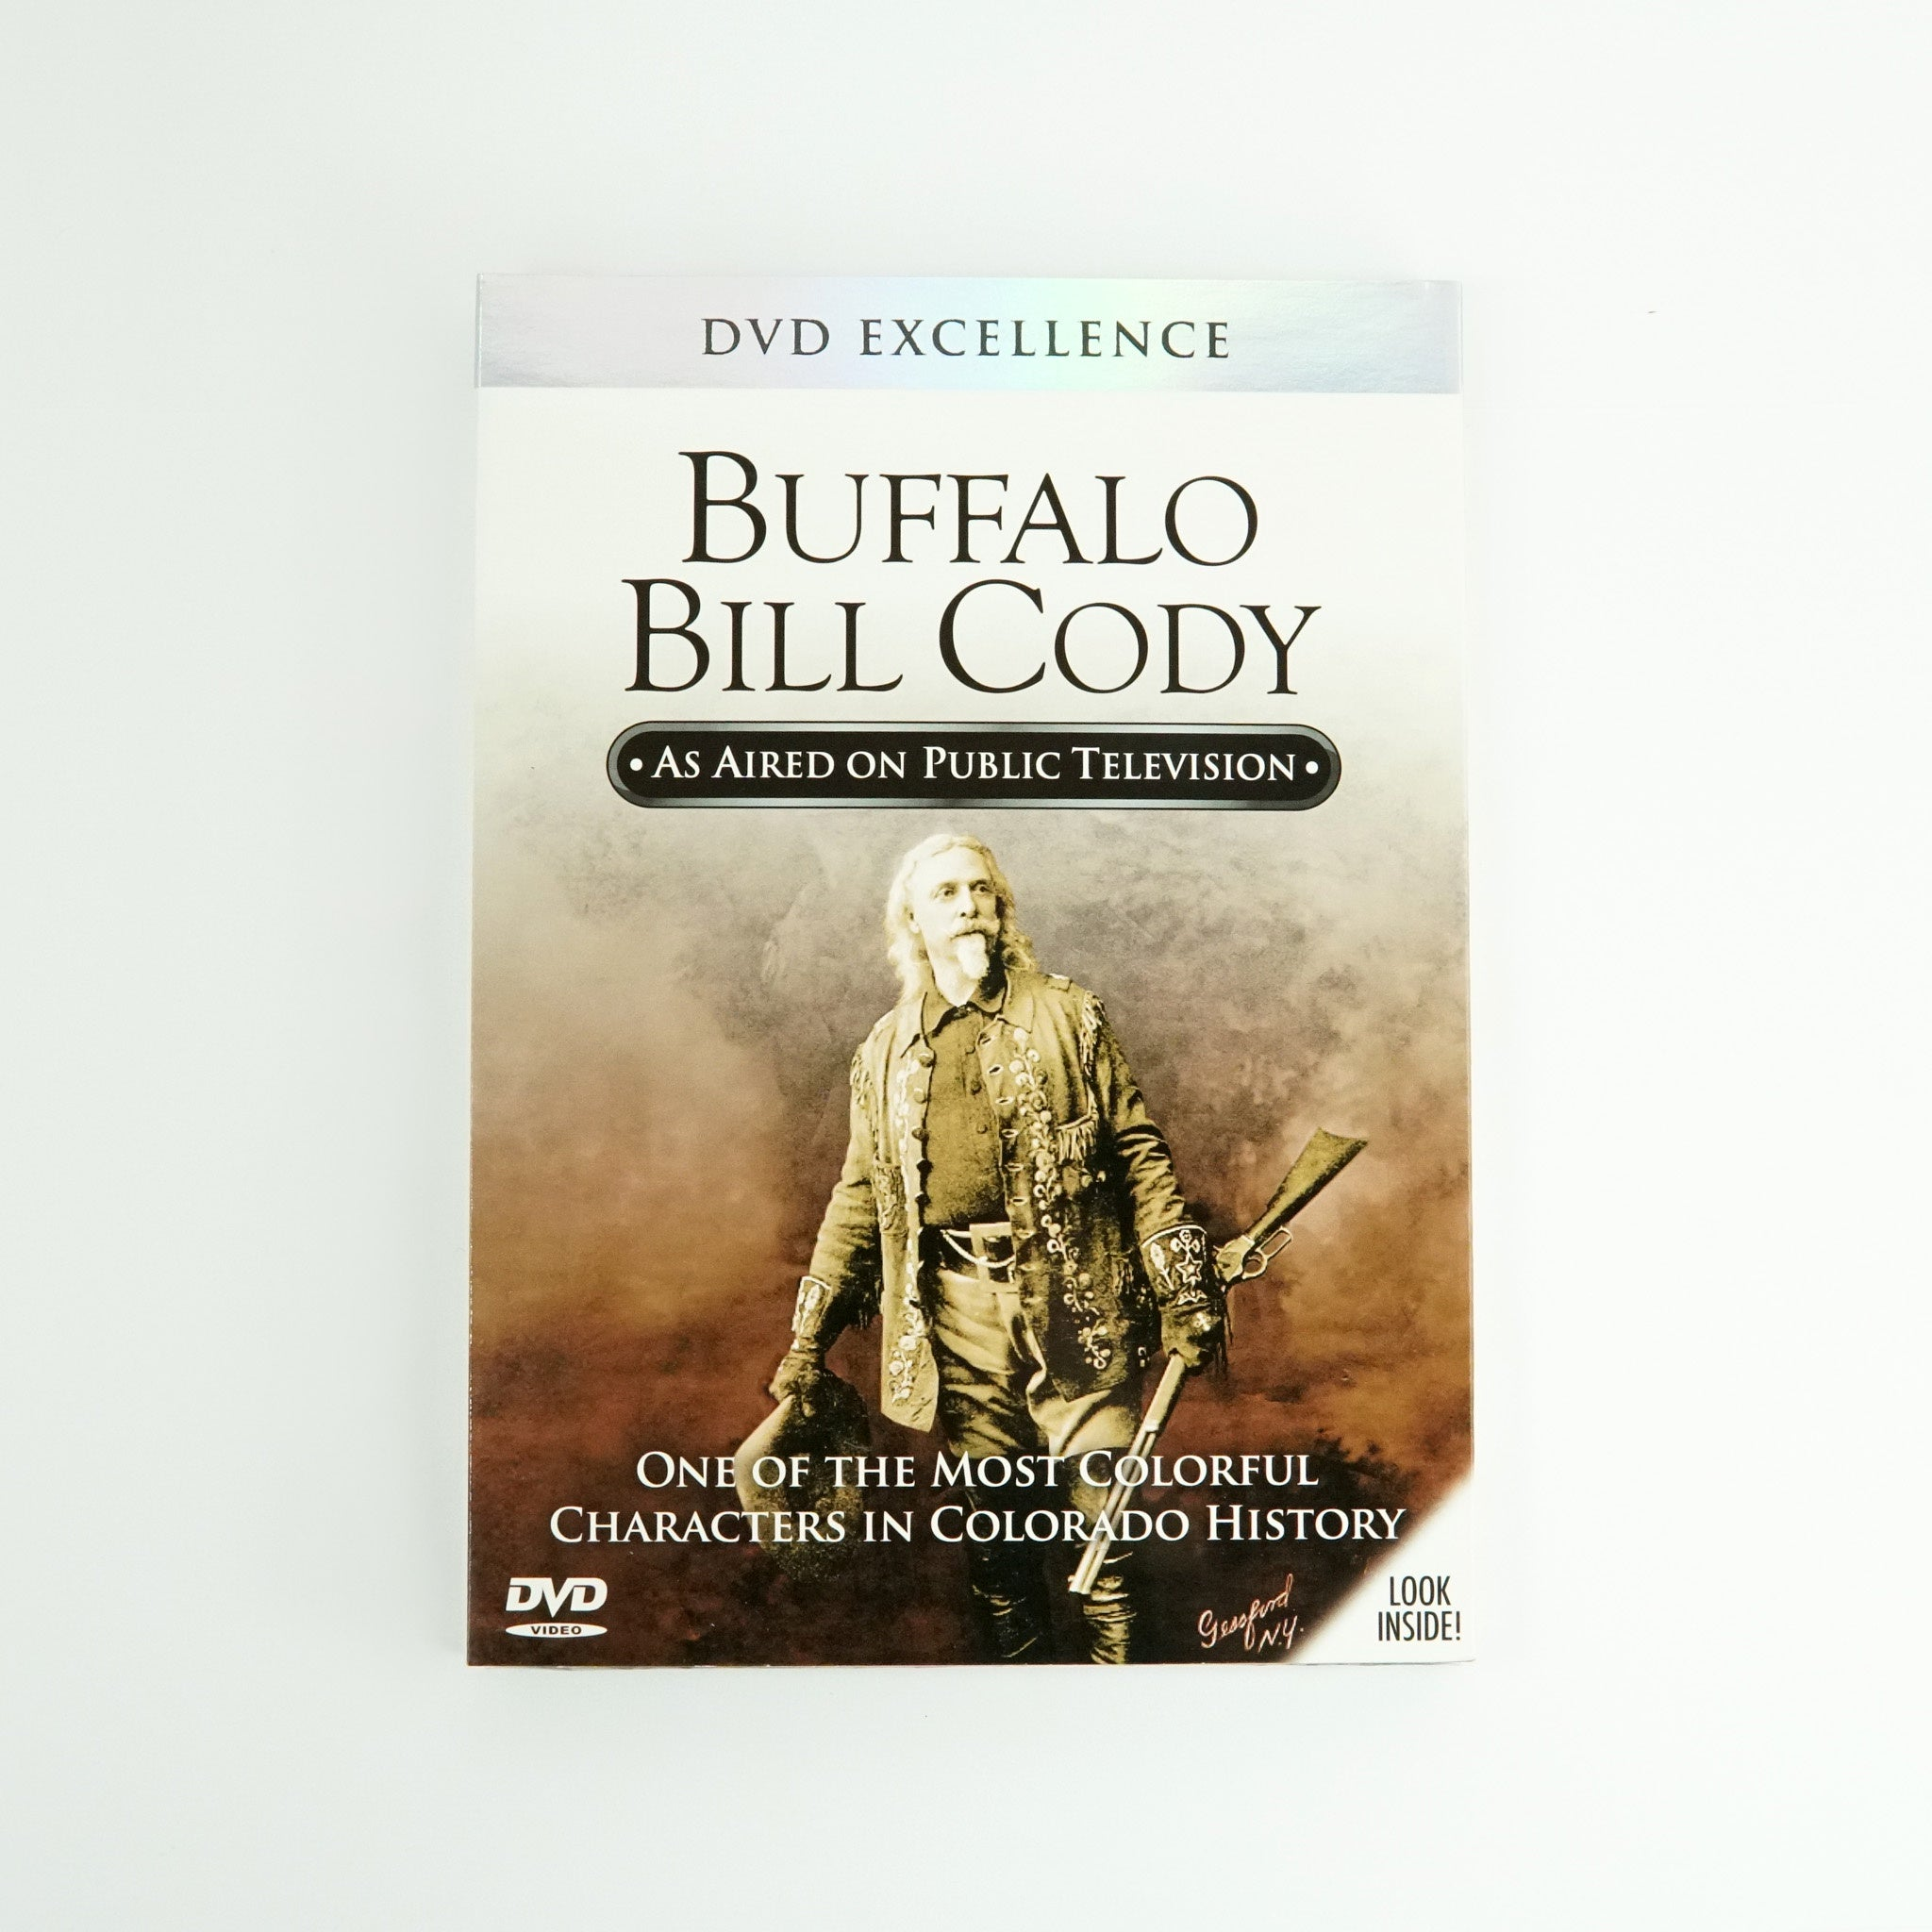 Buffalo Bill Cody DVD